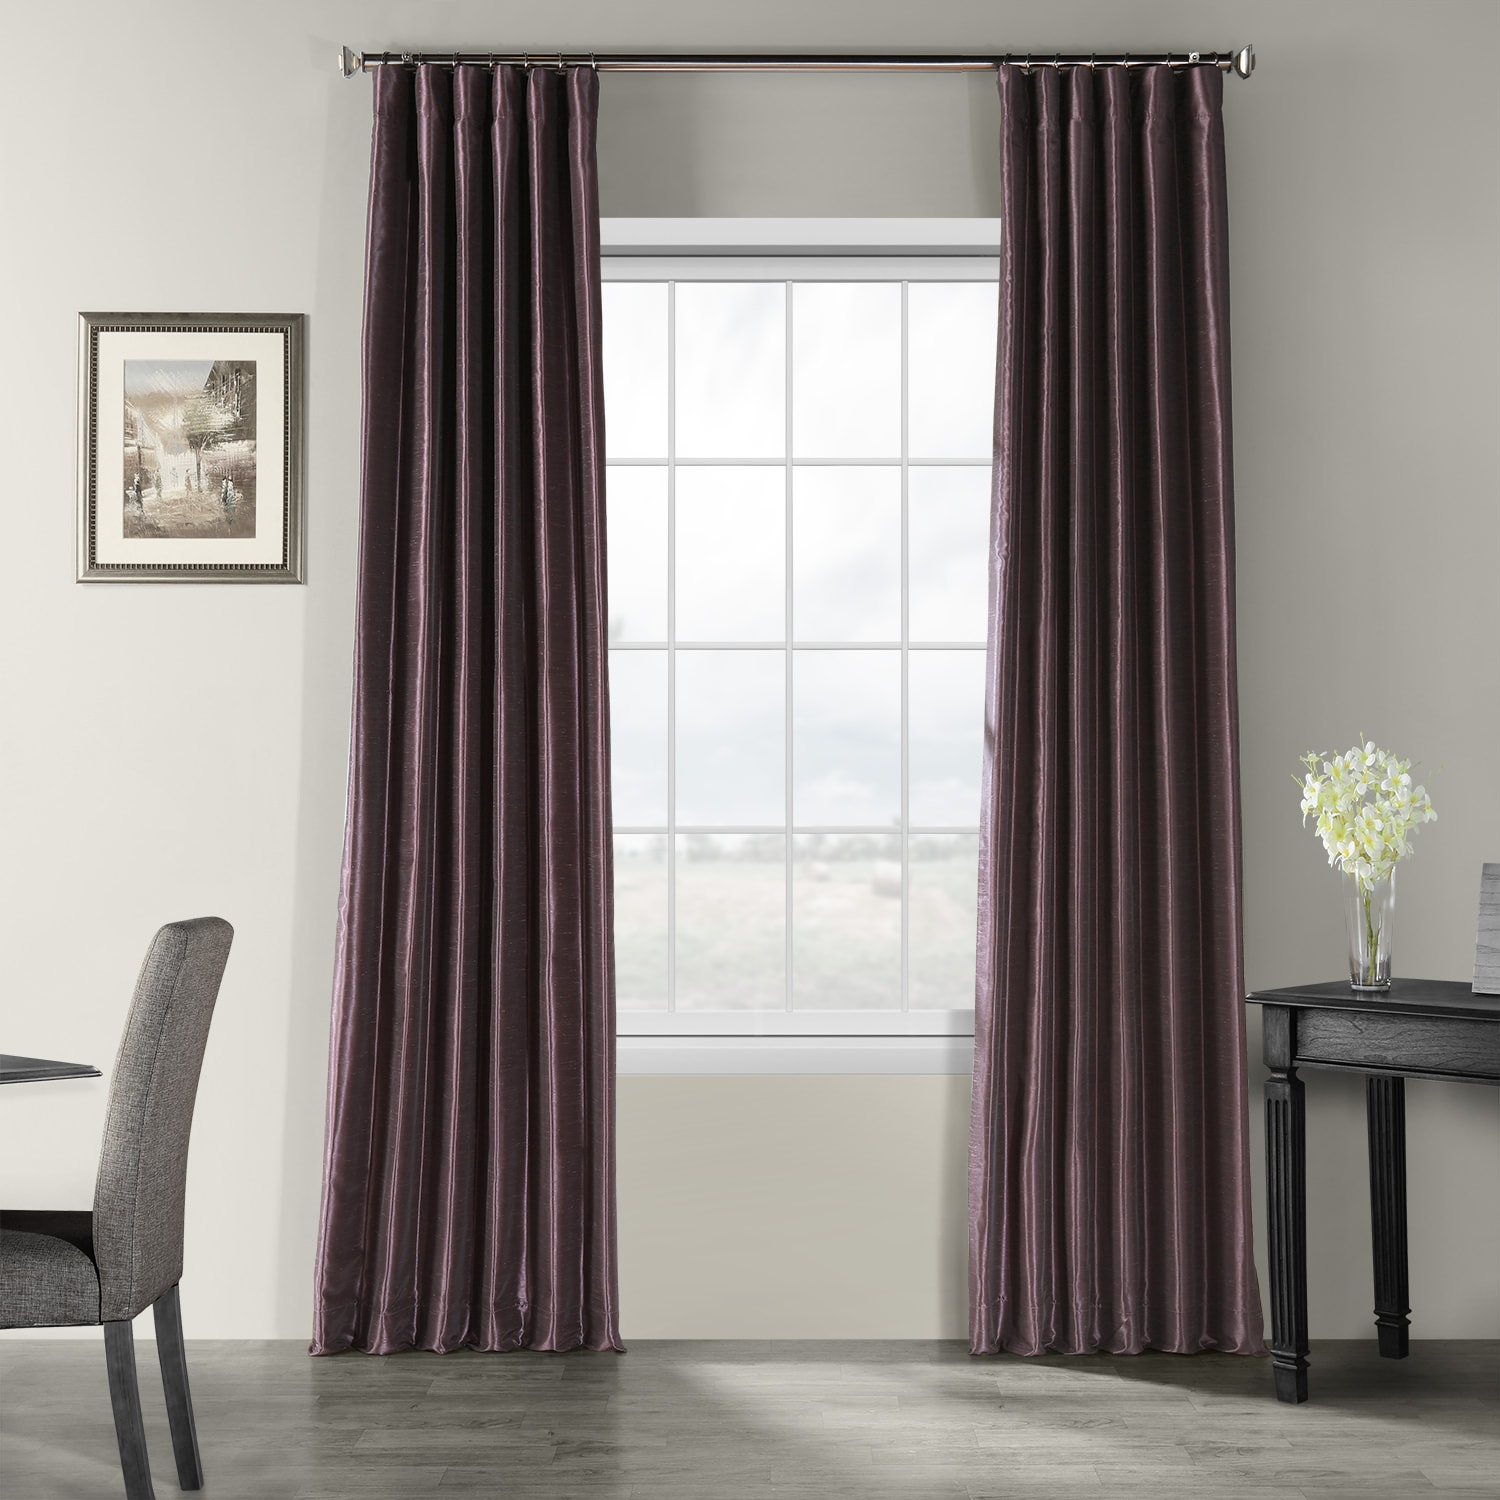 Dark Grape Vintage Textured Faux Dupioni Silk Curtain Pertaining To Ice White Vintage Faux Textured Silk Curtain Panels (View 11 of 20)